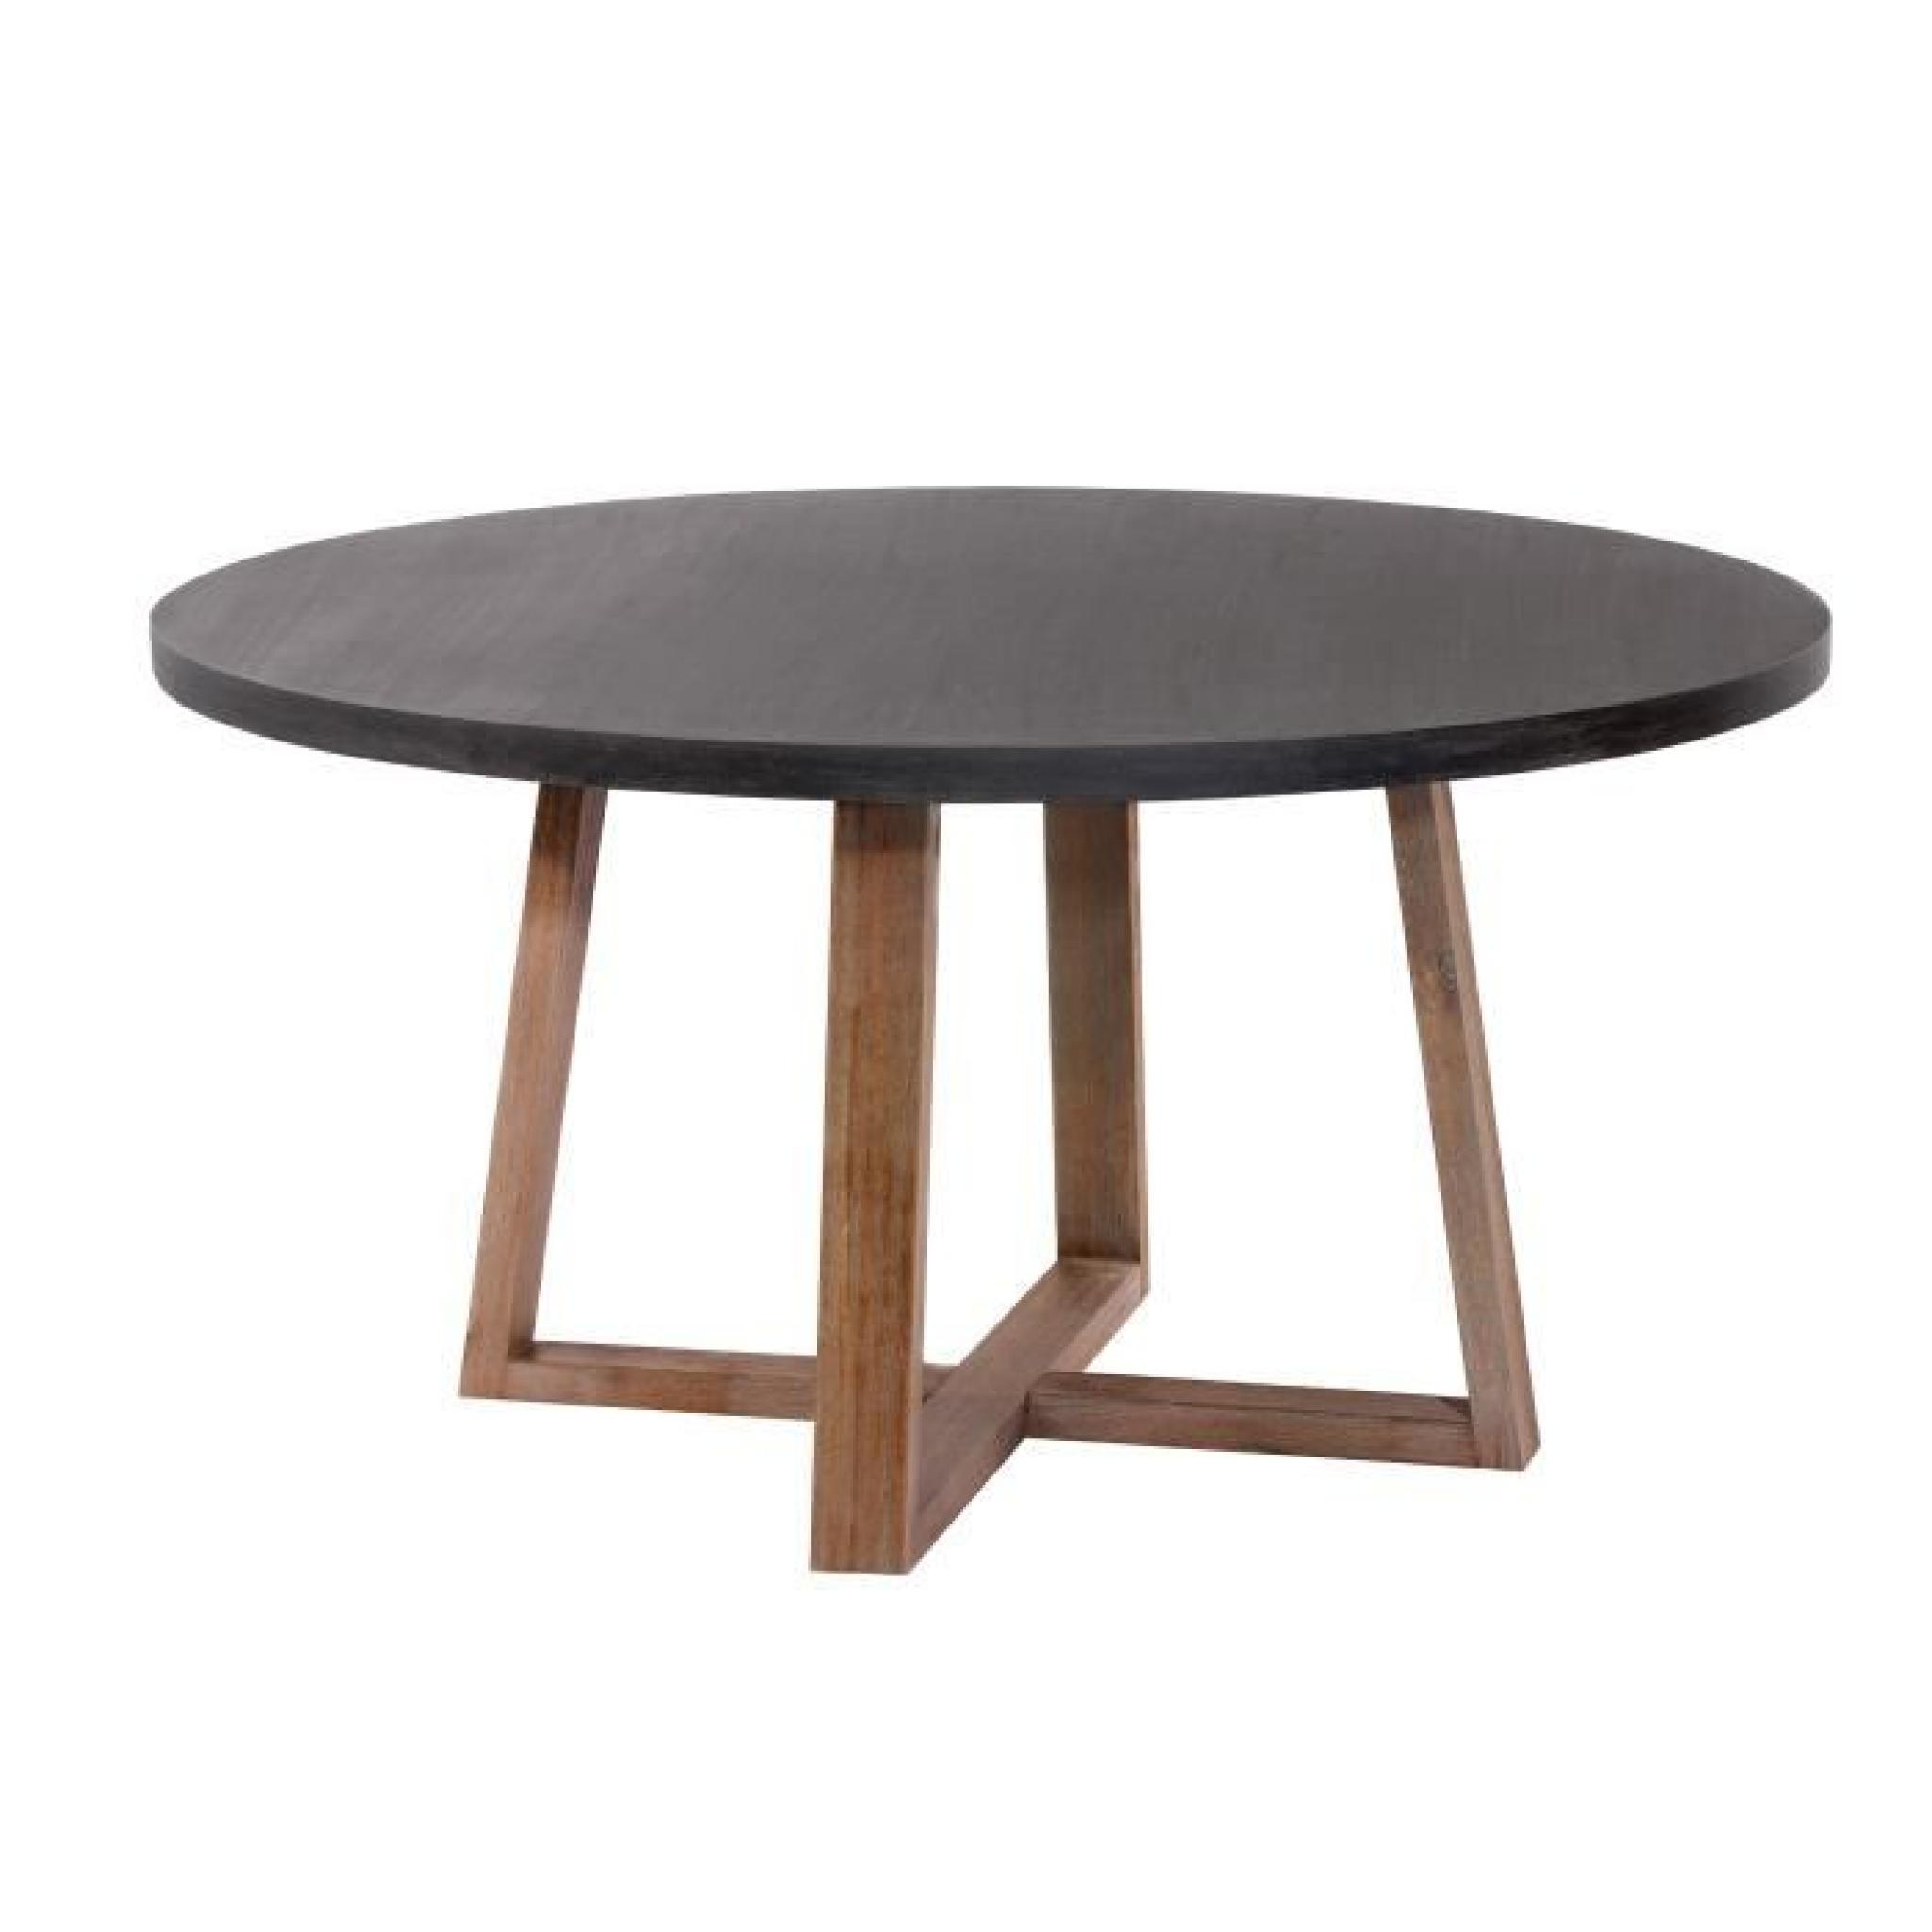 Table ronde tambora 140 cm achat vente table salle a for Table a manger ronde bois